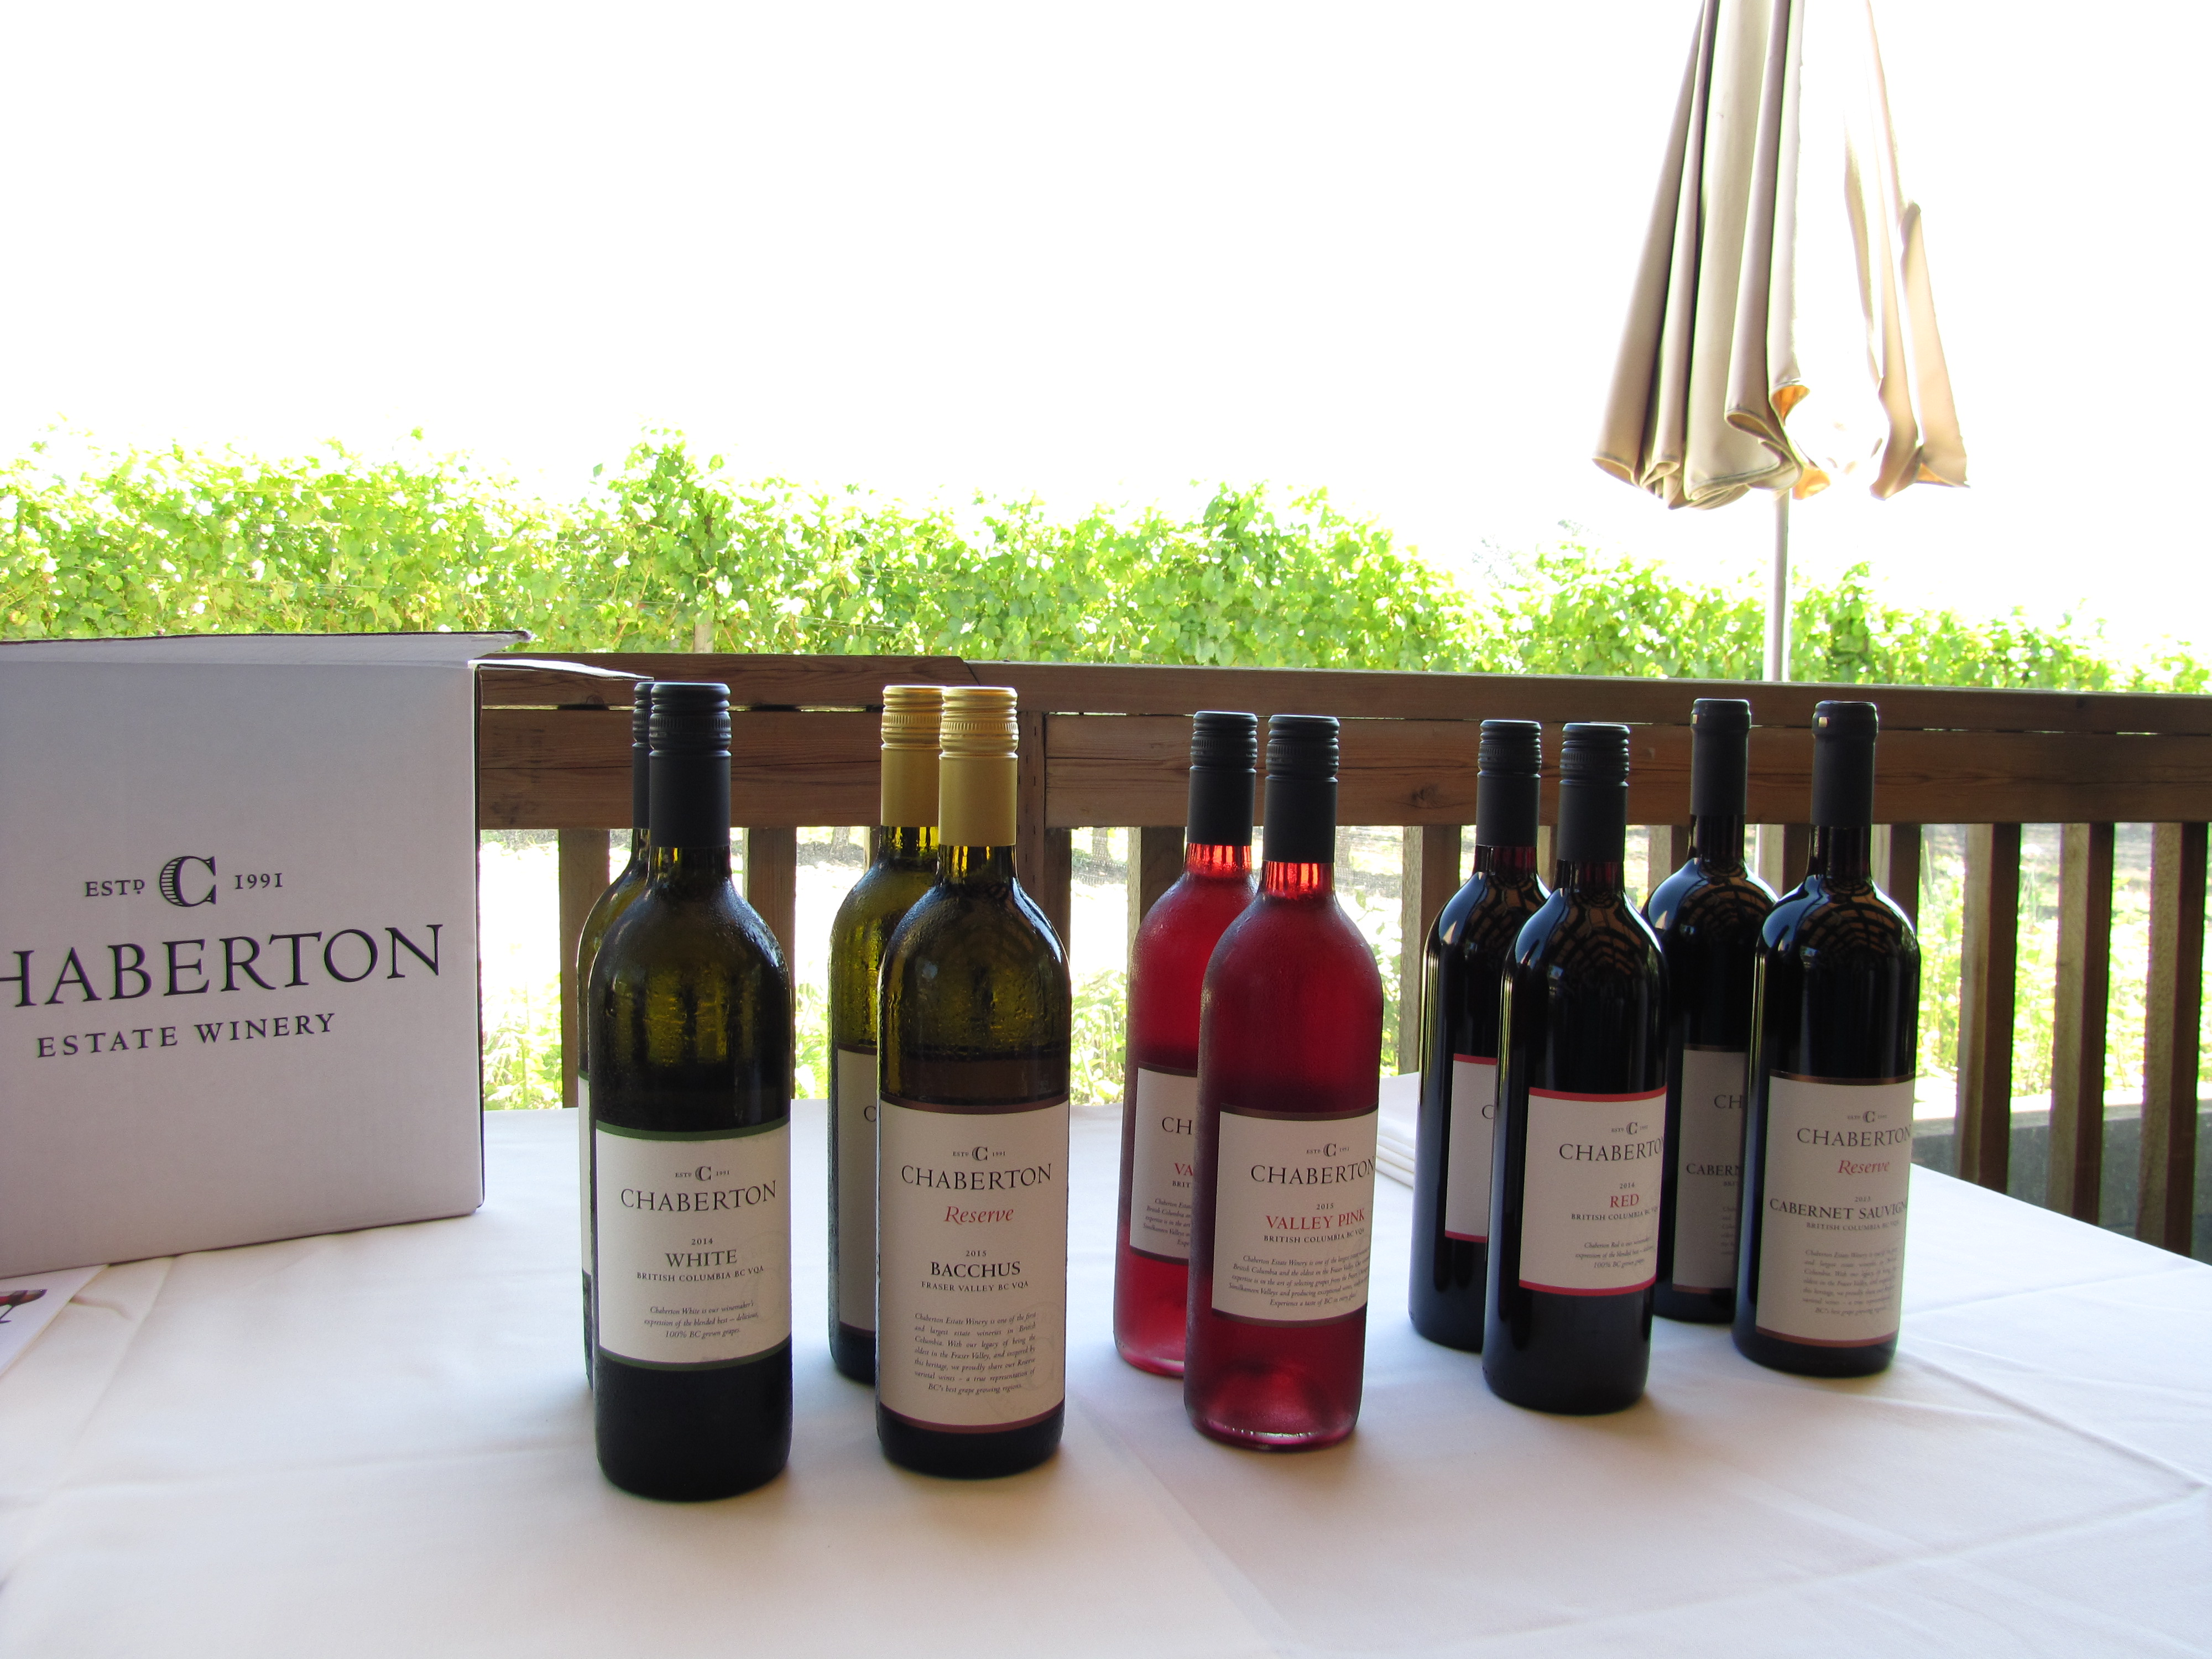 Haberton wine displayed on table